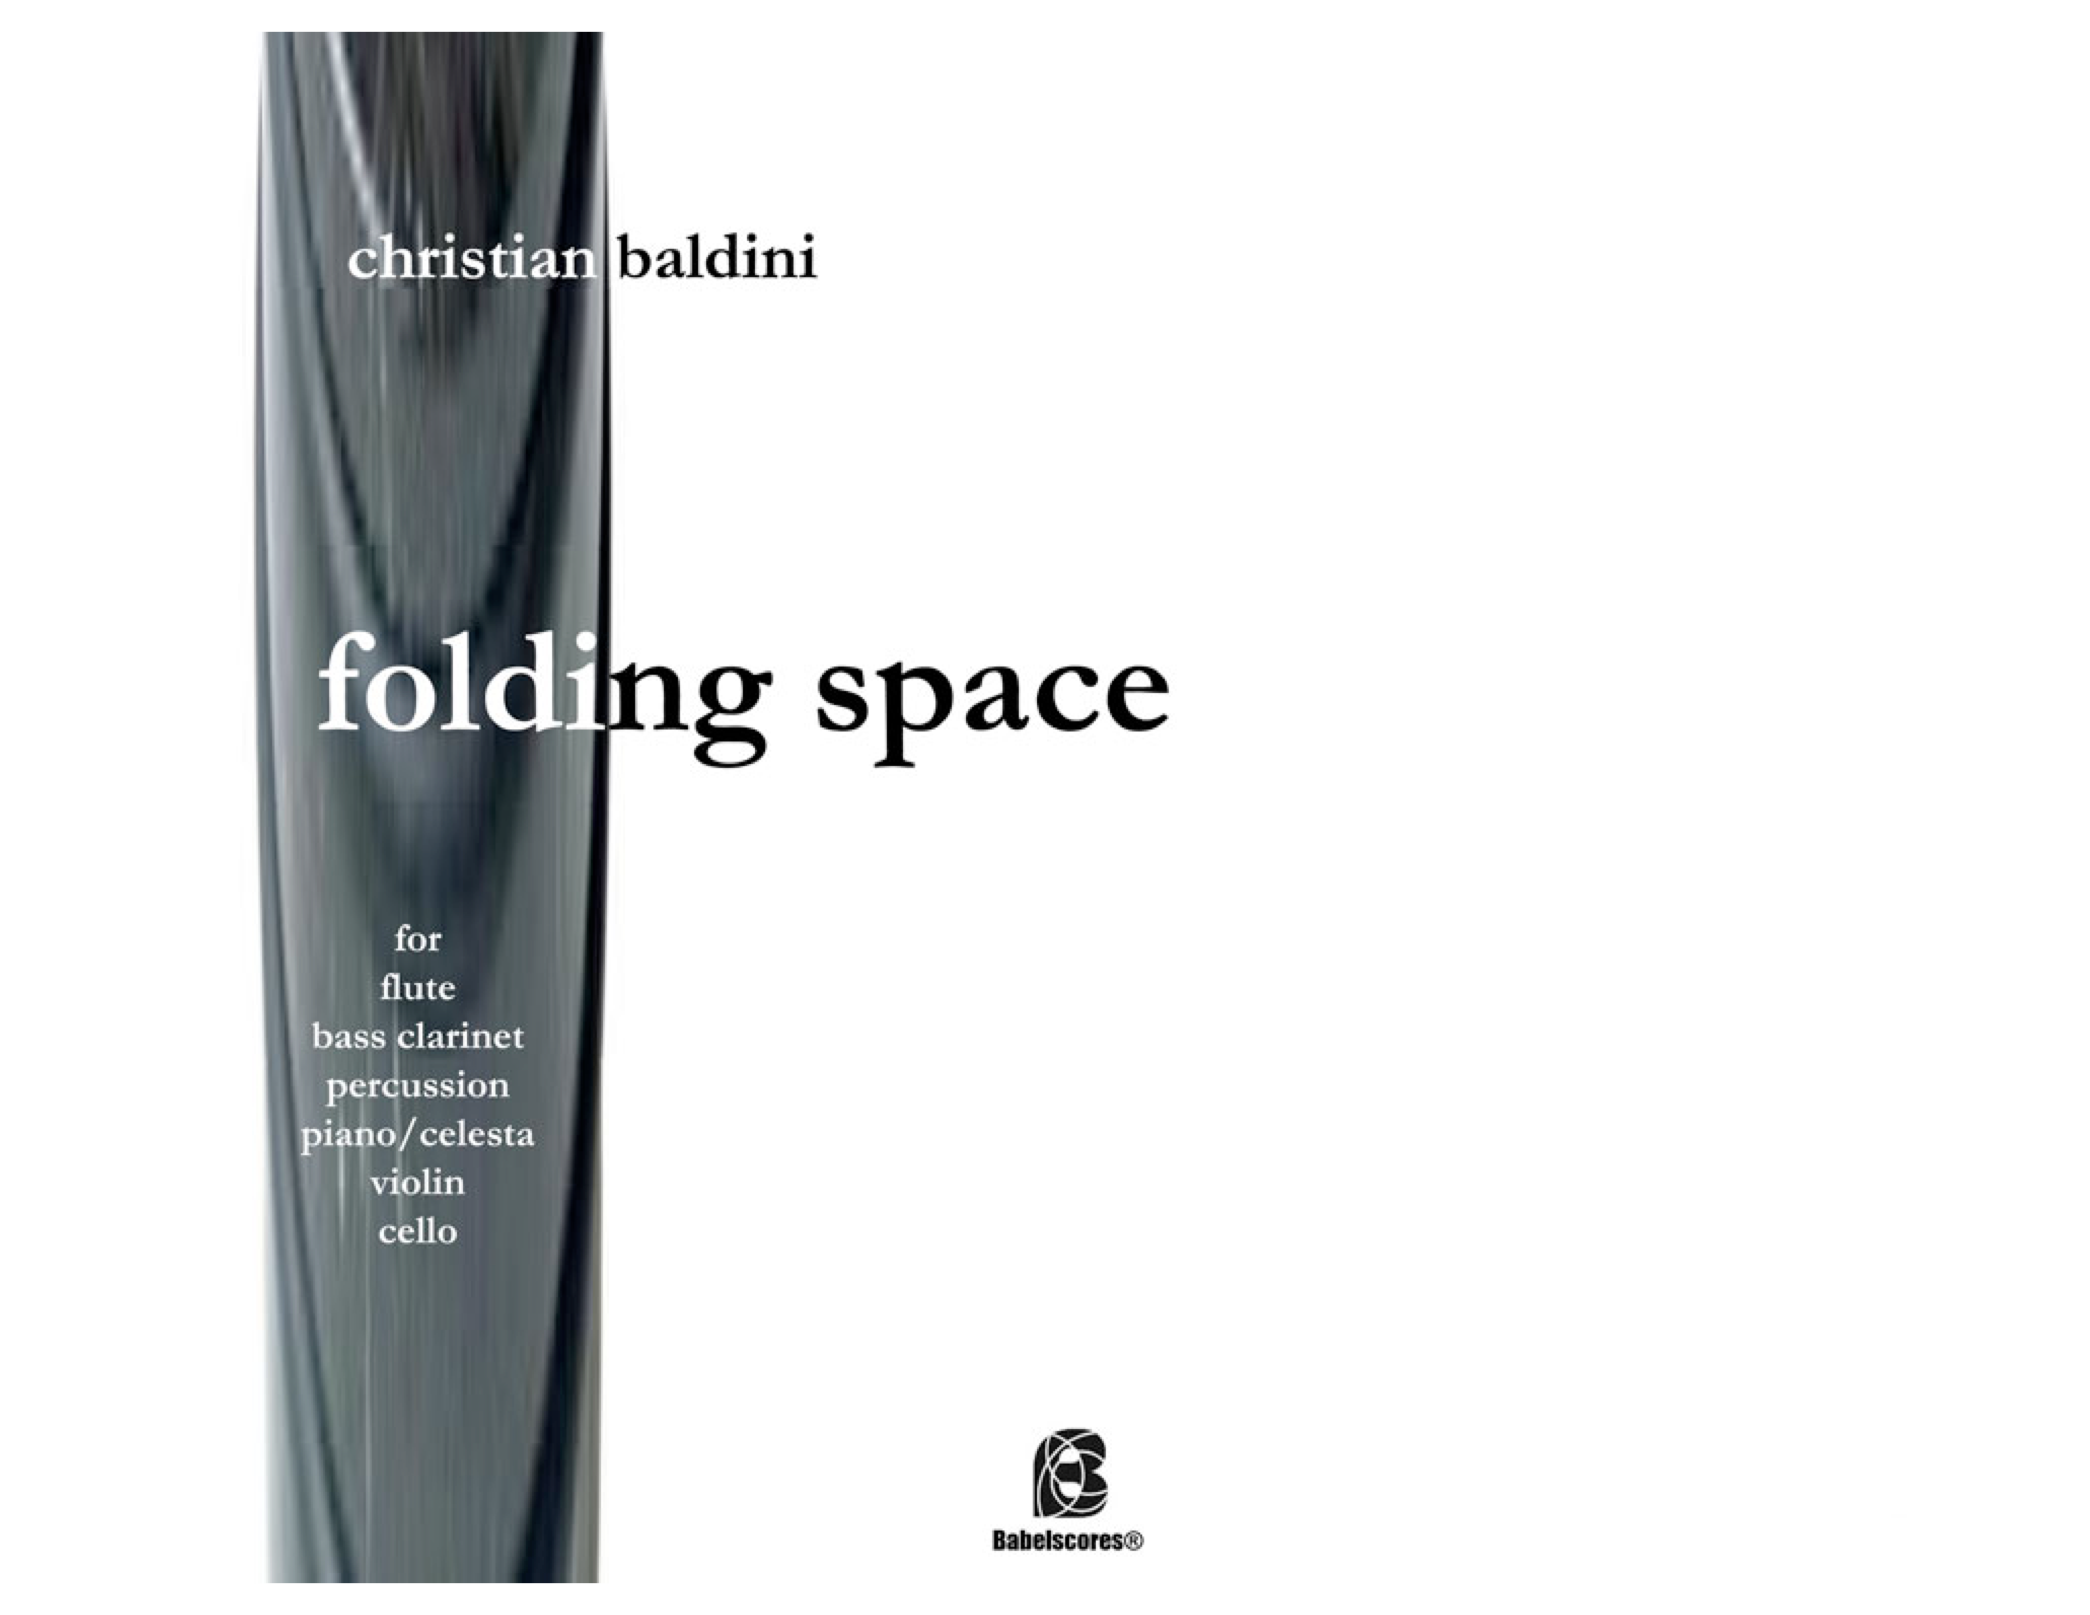 folding space full score Baldini